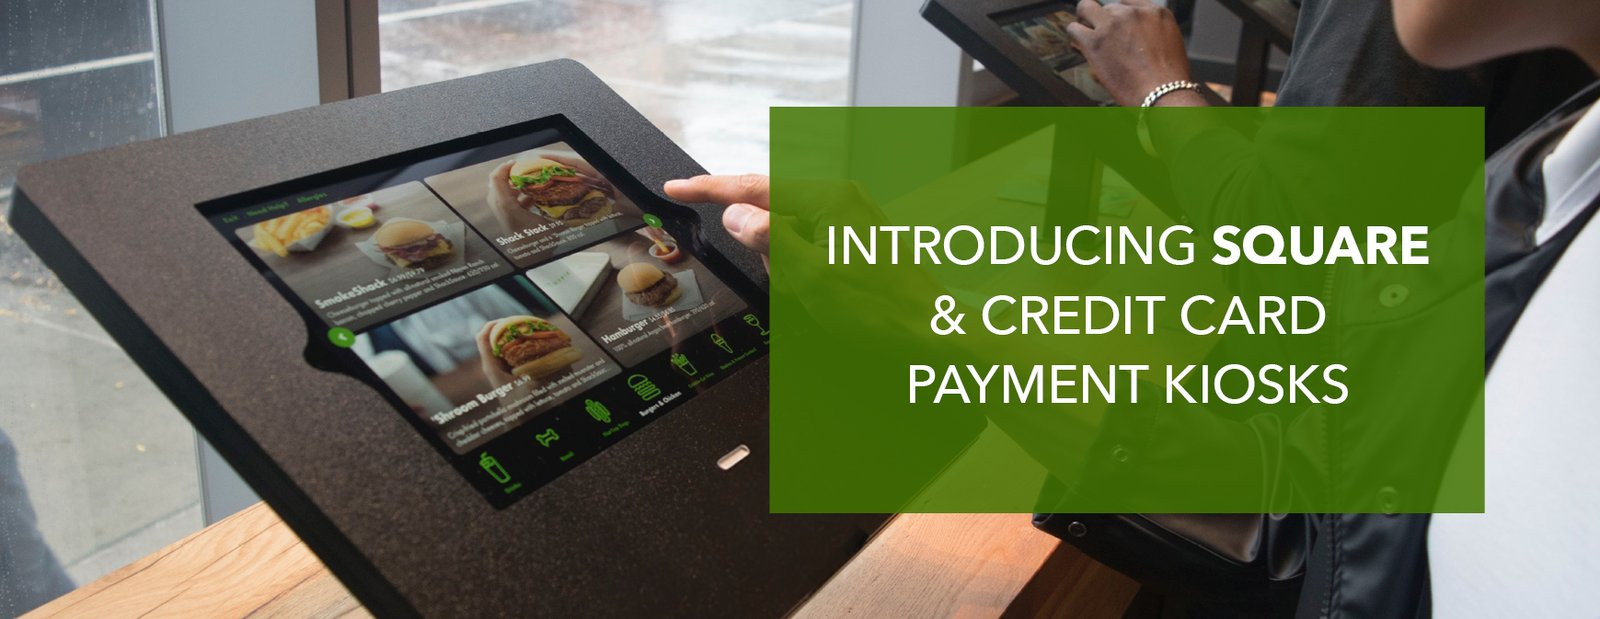 Introducing Square and Credit Card Payment Kiosks